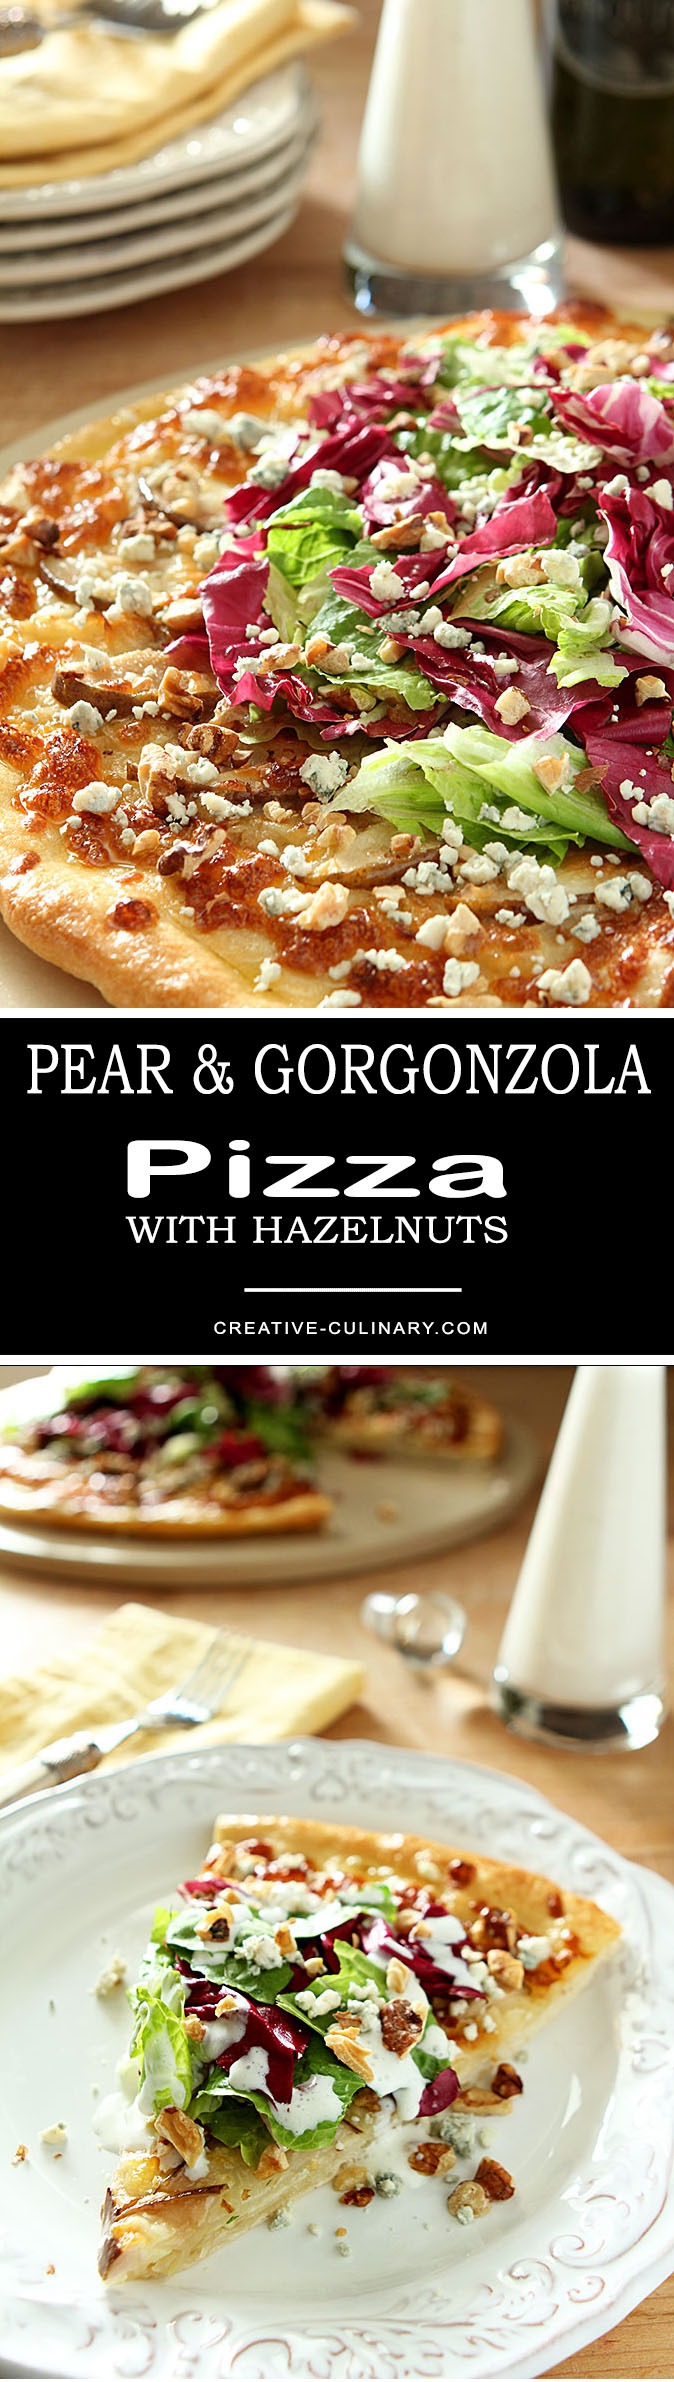 I wanted to recreate a favorite from California Pizza Kitchen and I think this Pear, Gorgonzola and Hazelnut Pizza with Mixed Greens was right on the money. It's light, so tasty and pretty to boot!